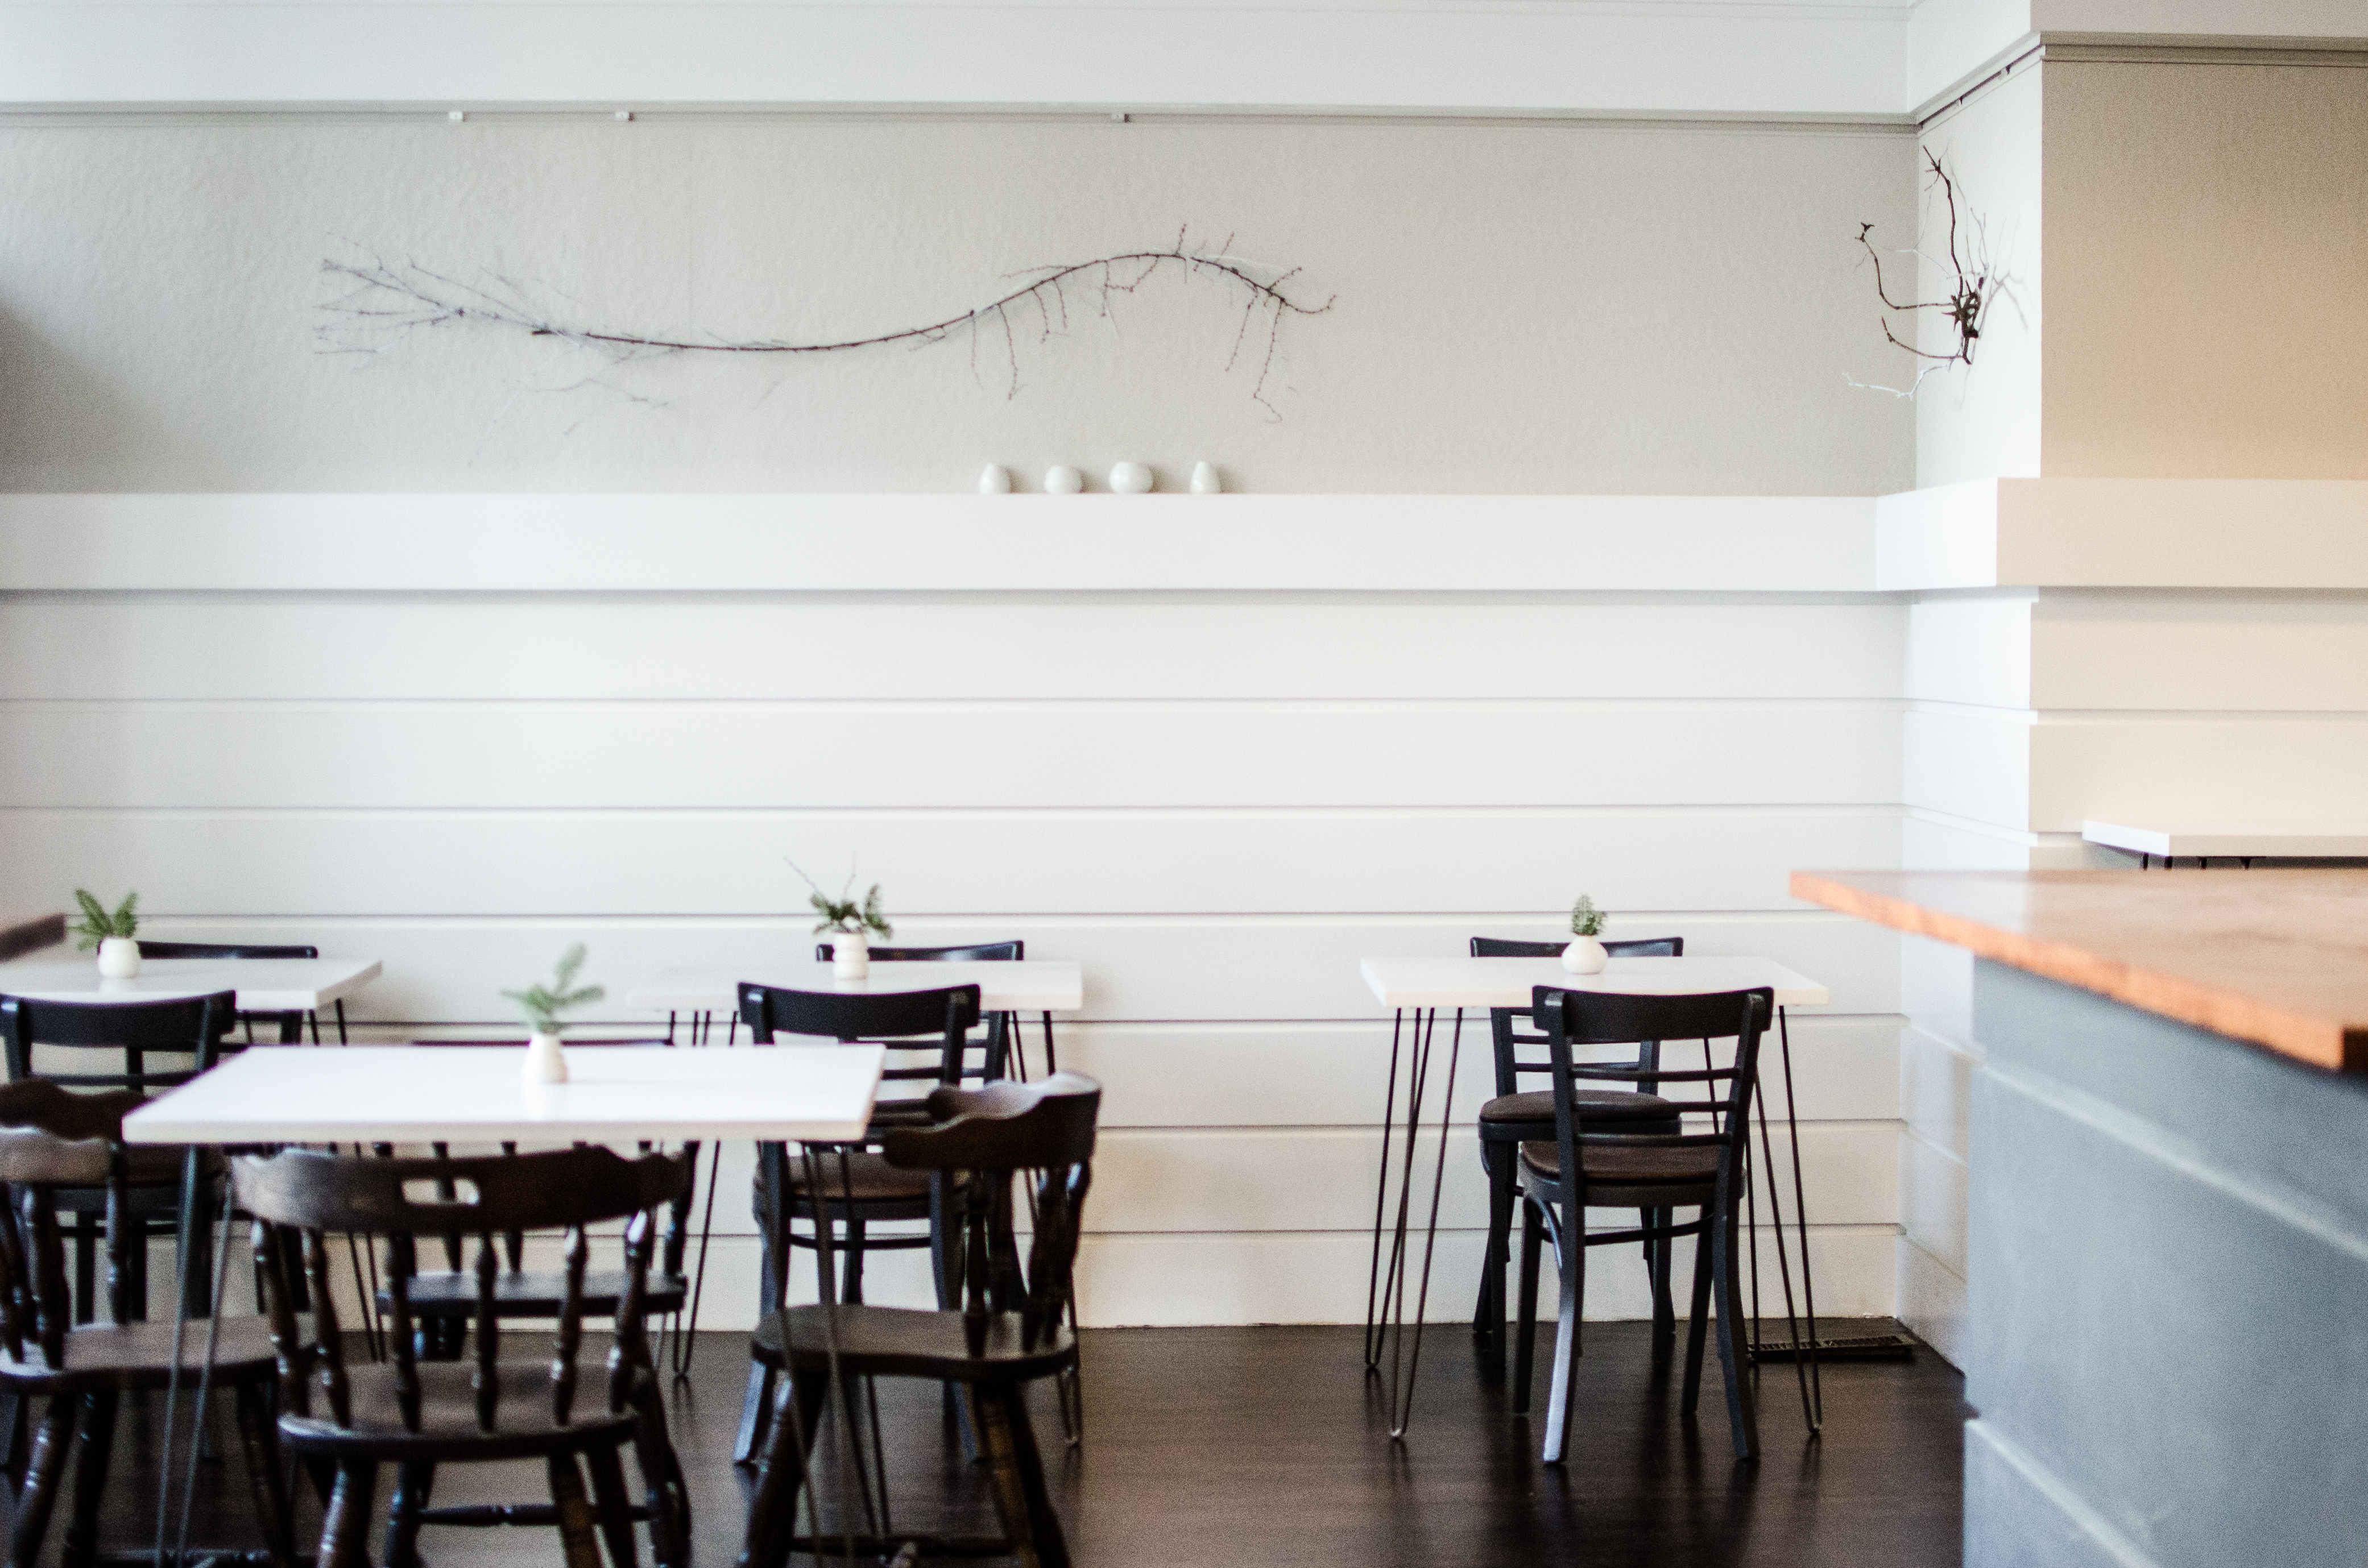 Interior of a well-lit restaurant with minimalist decor and white and off-white walls